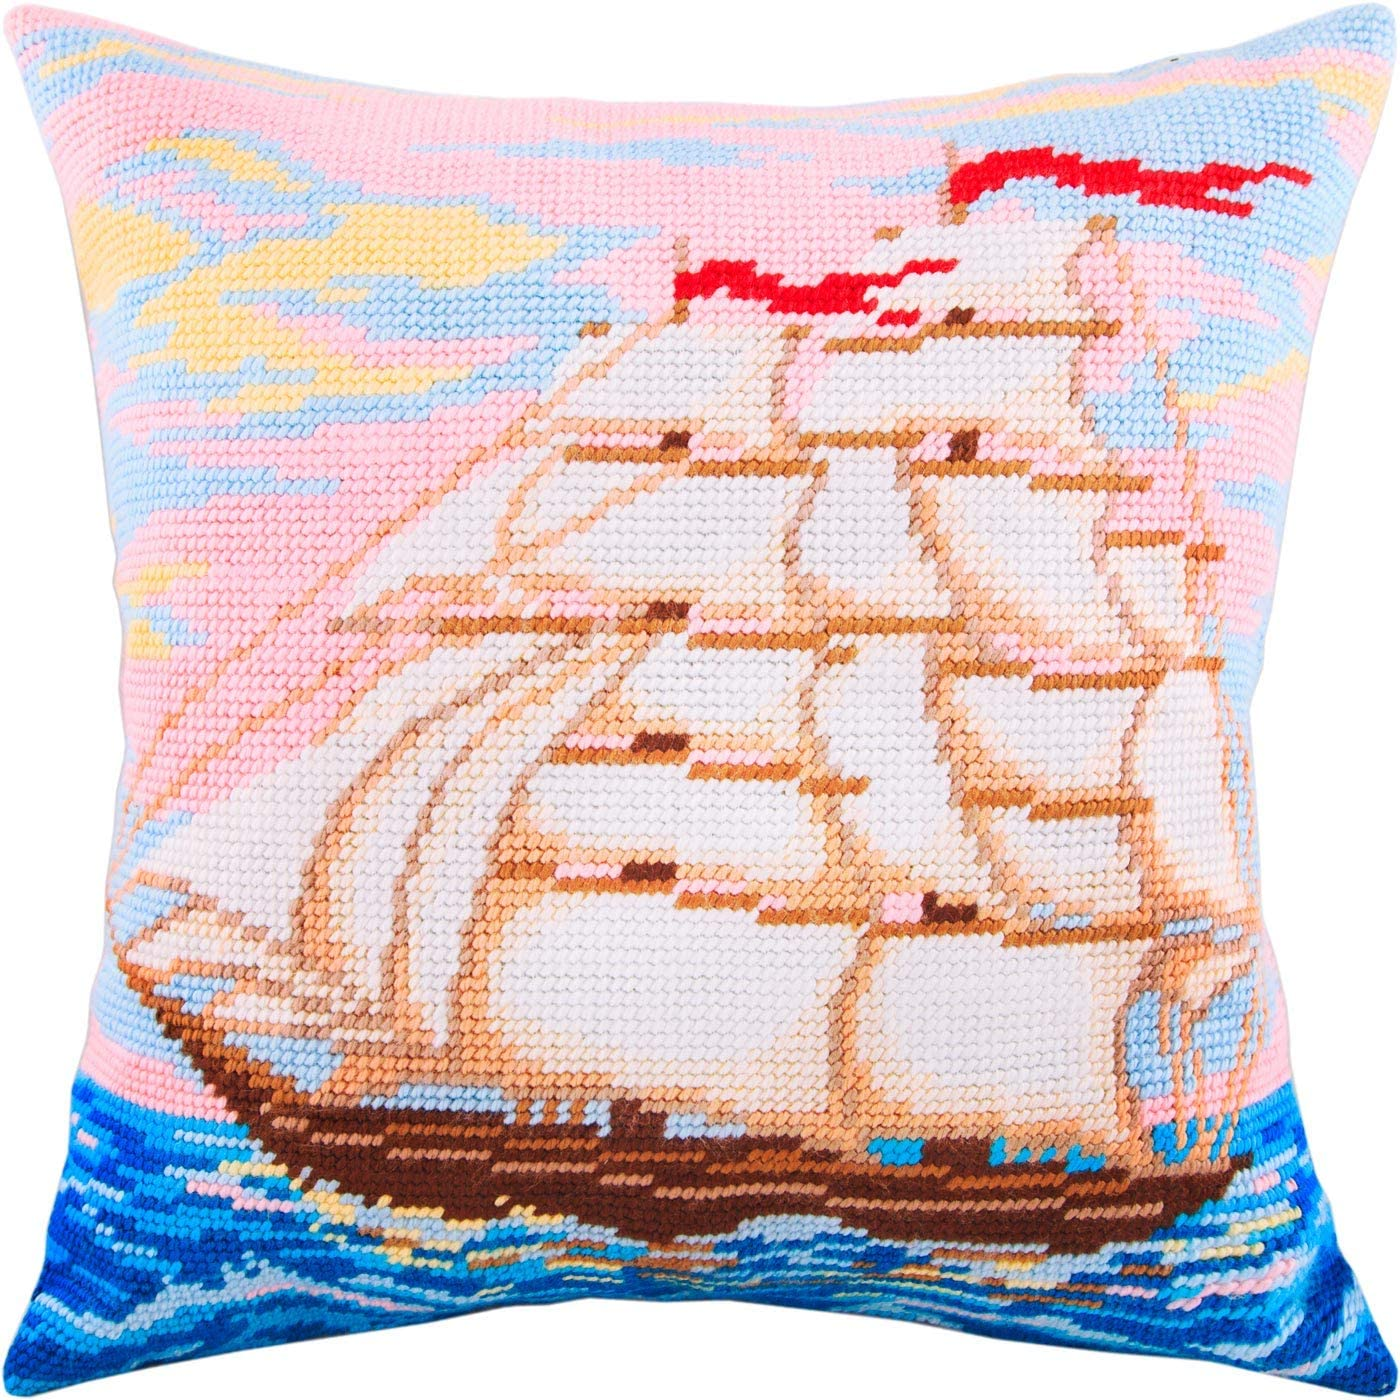 Sailing Ship. Needlepoint Kit. Throw Pillow 16×16 Inches. Printed Tapestry Canvas, European Quality